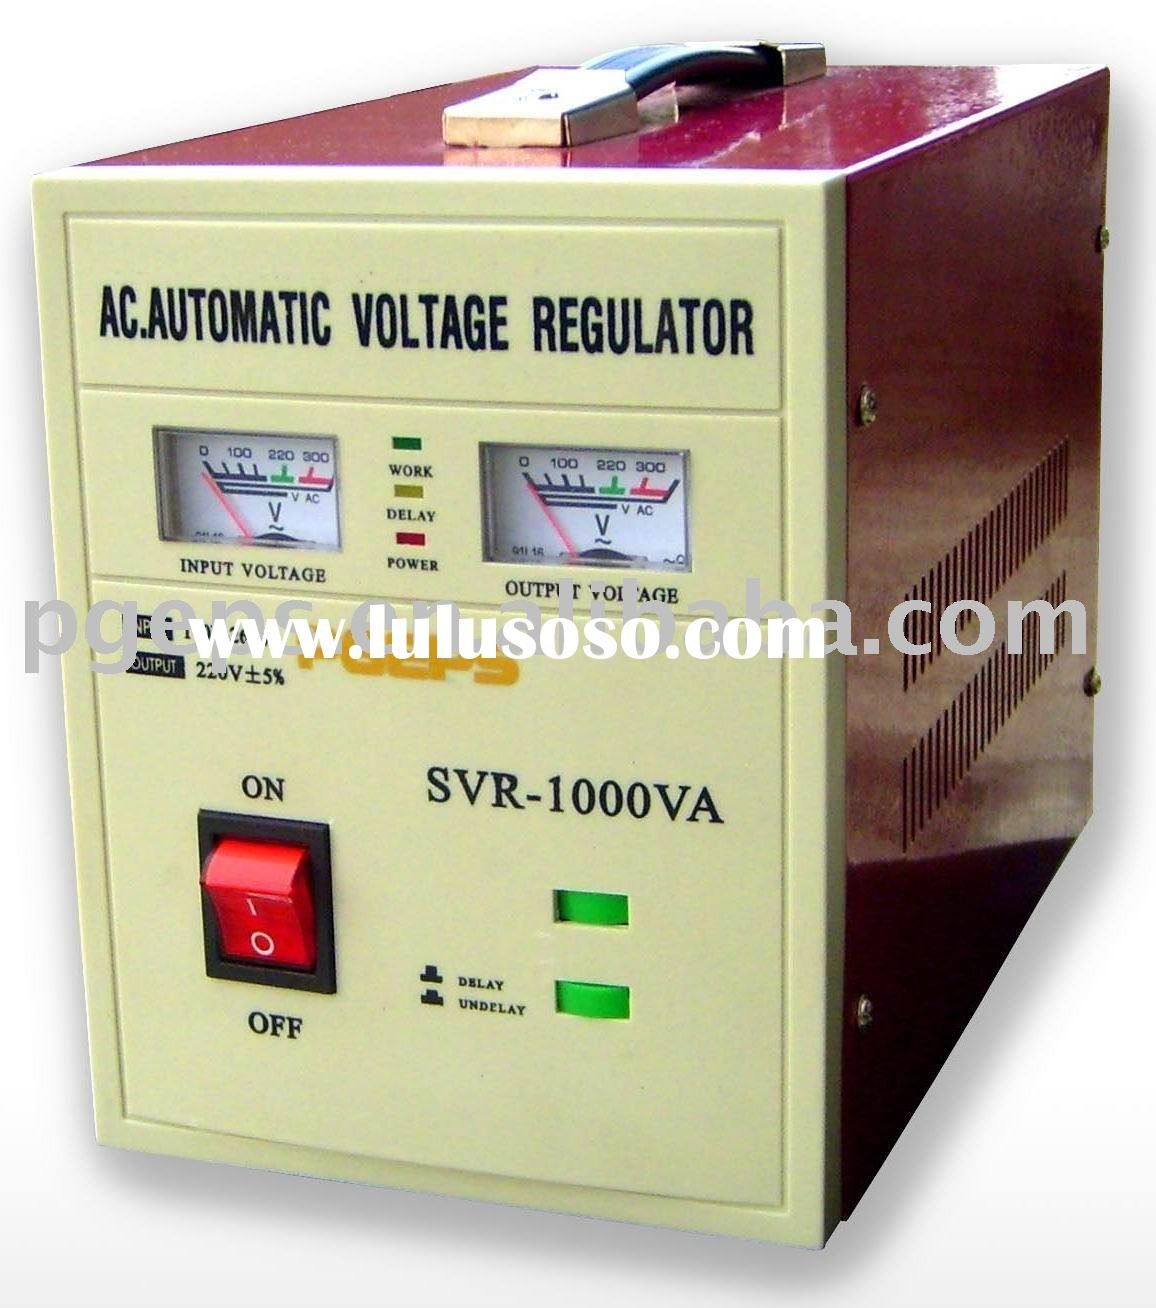 relay type AC automatic voltage regulator